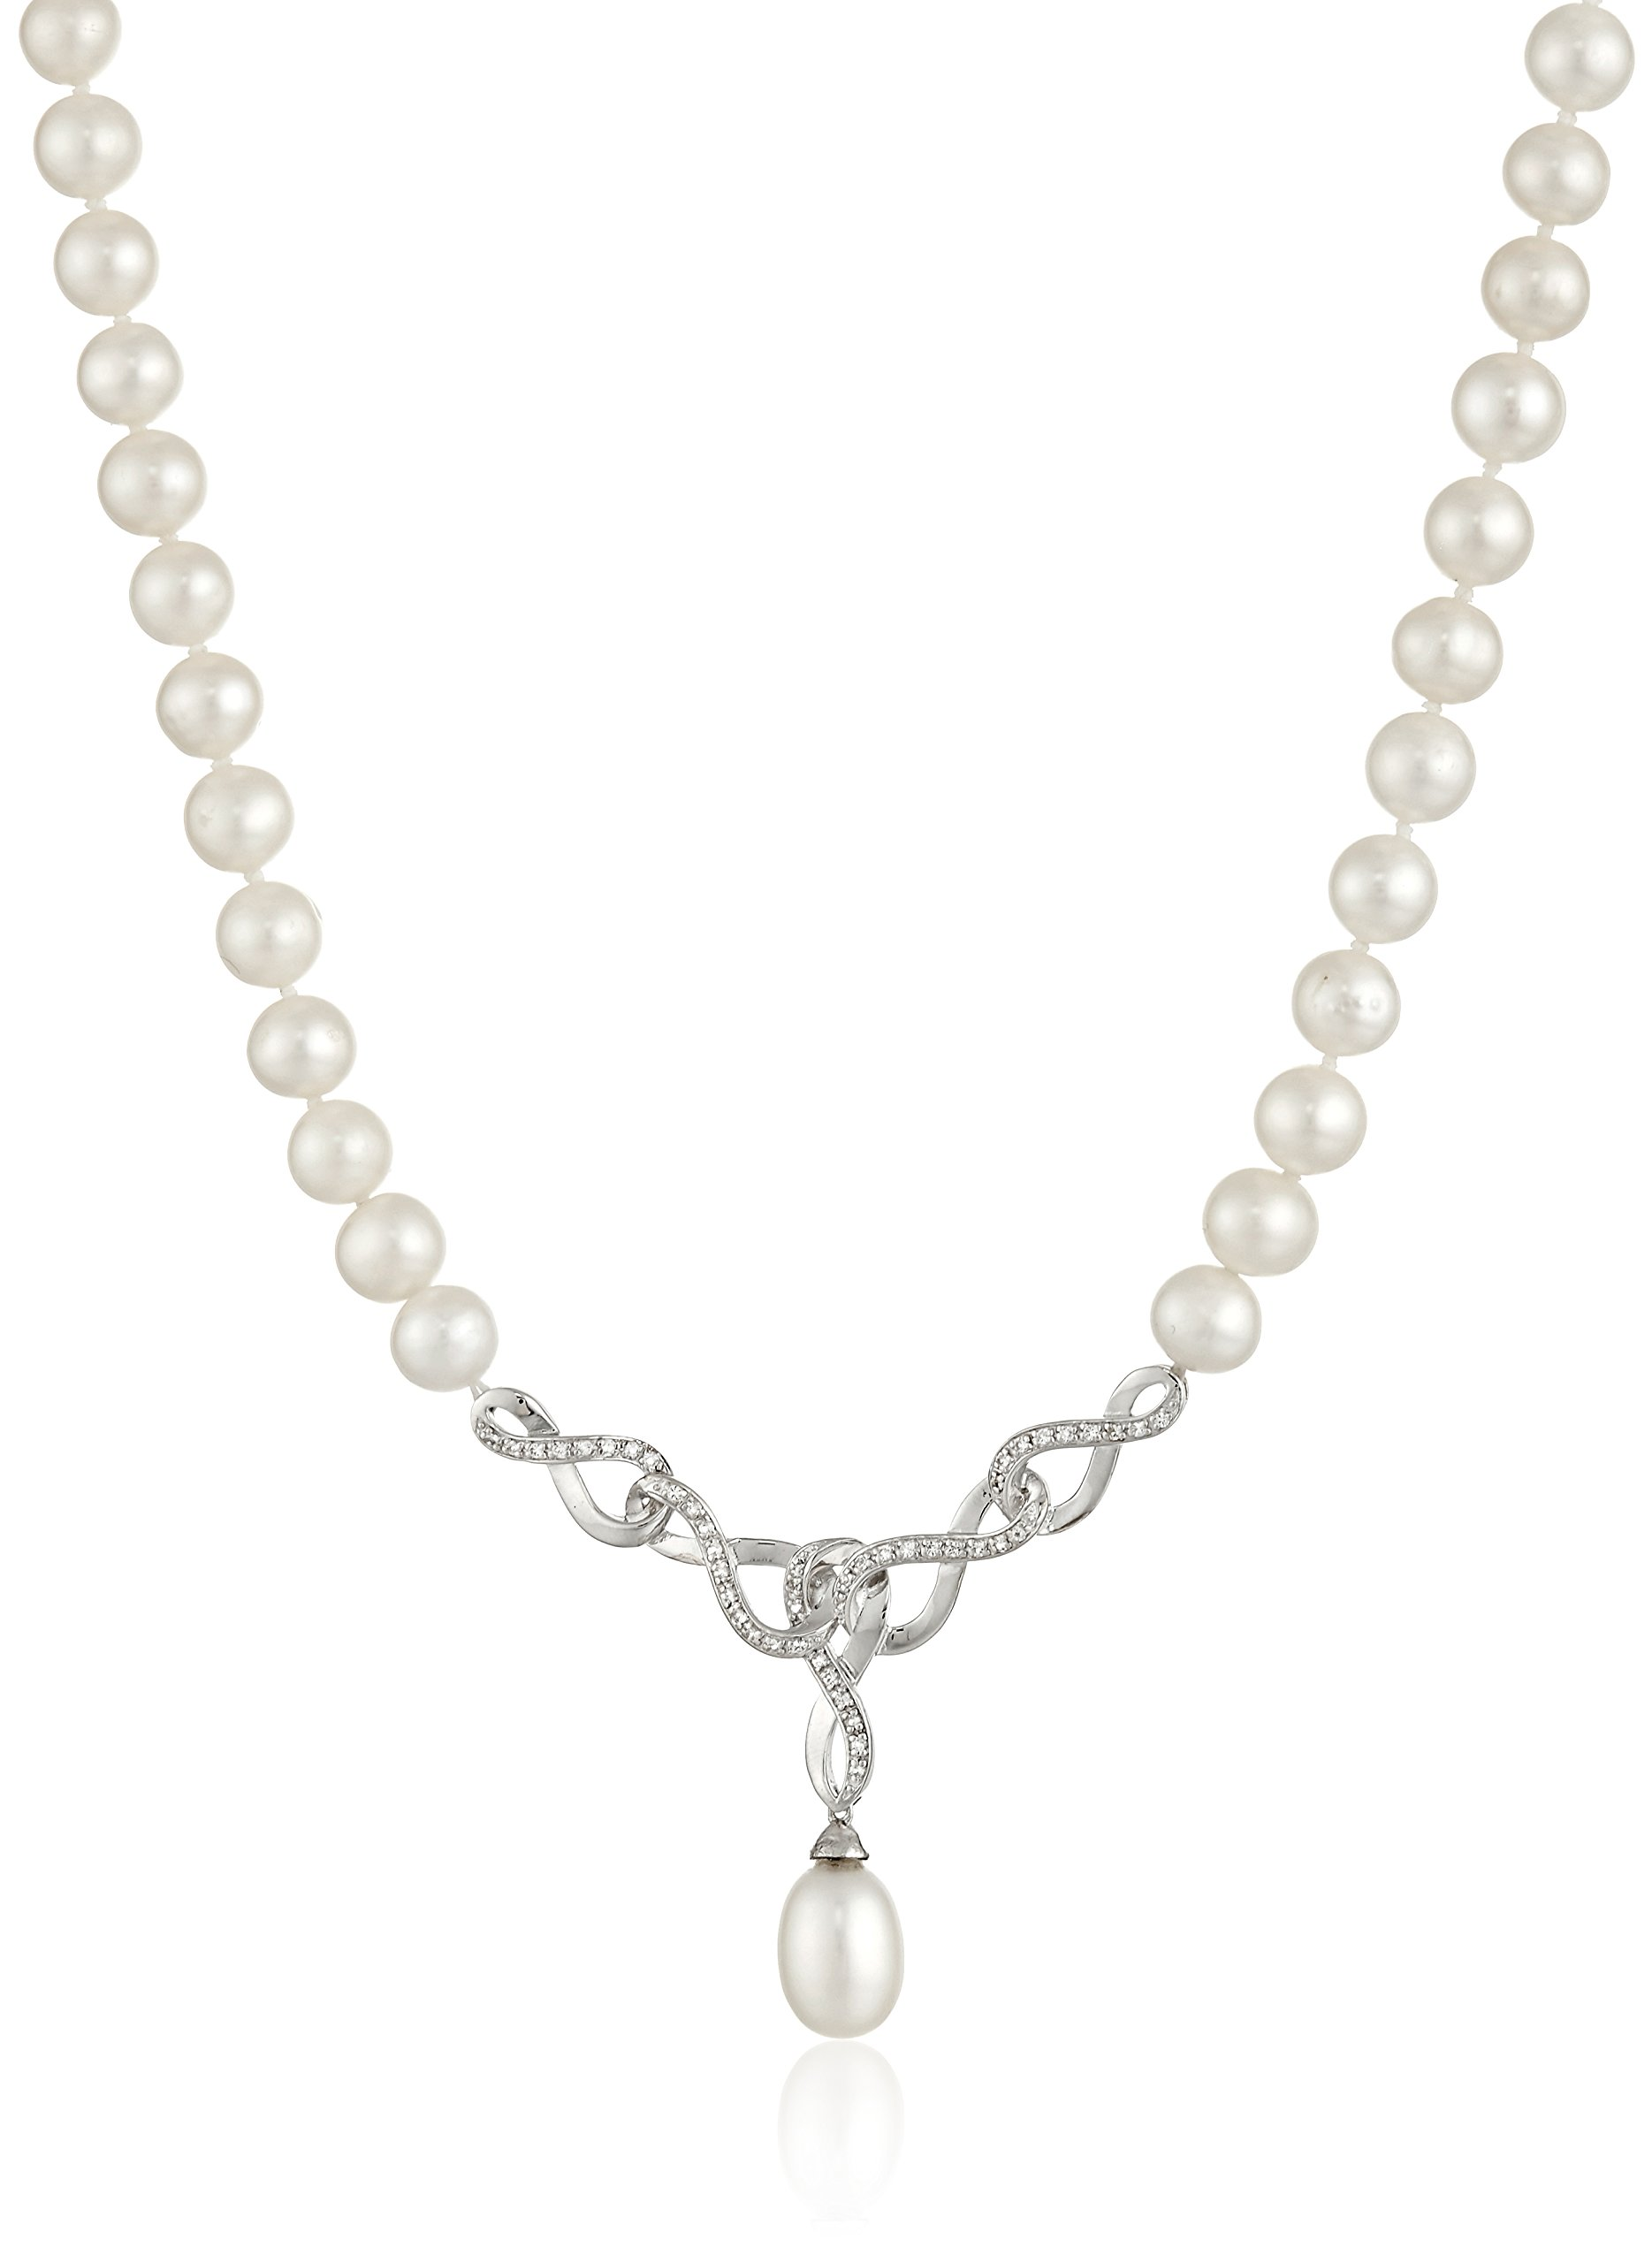 Freshwater Cultured Pearl and White Topaz Interlocking Pearl Strand Necklace With Pendant, 18''